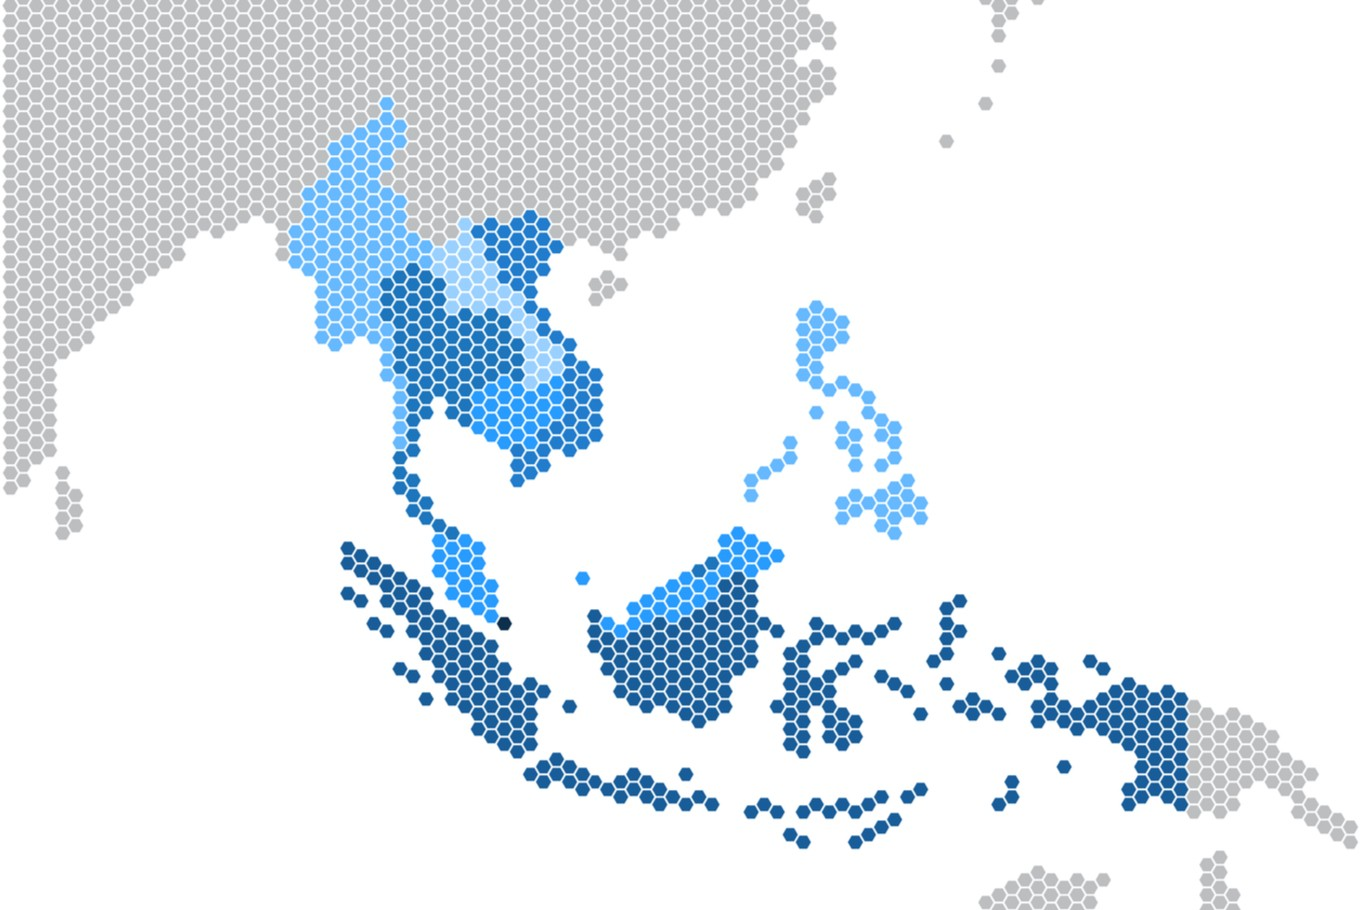 In 2019, has ASEAN redefined the Indo-Pacific?